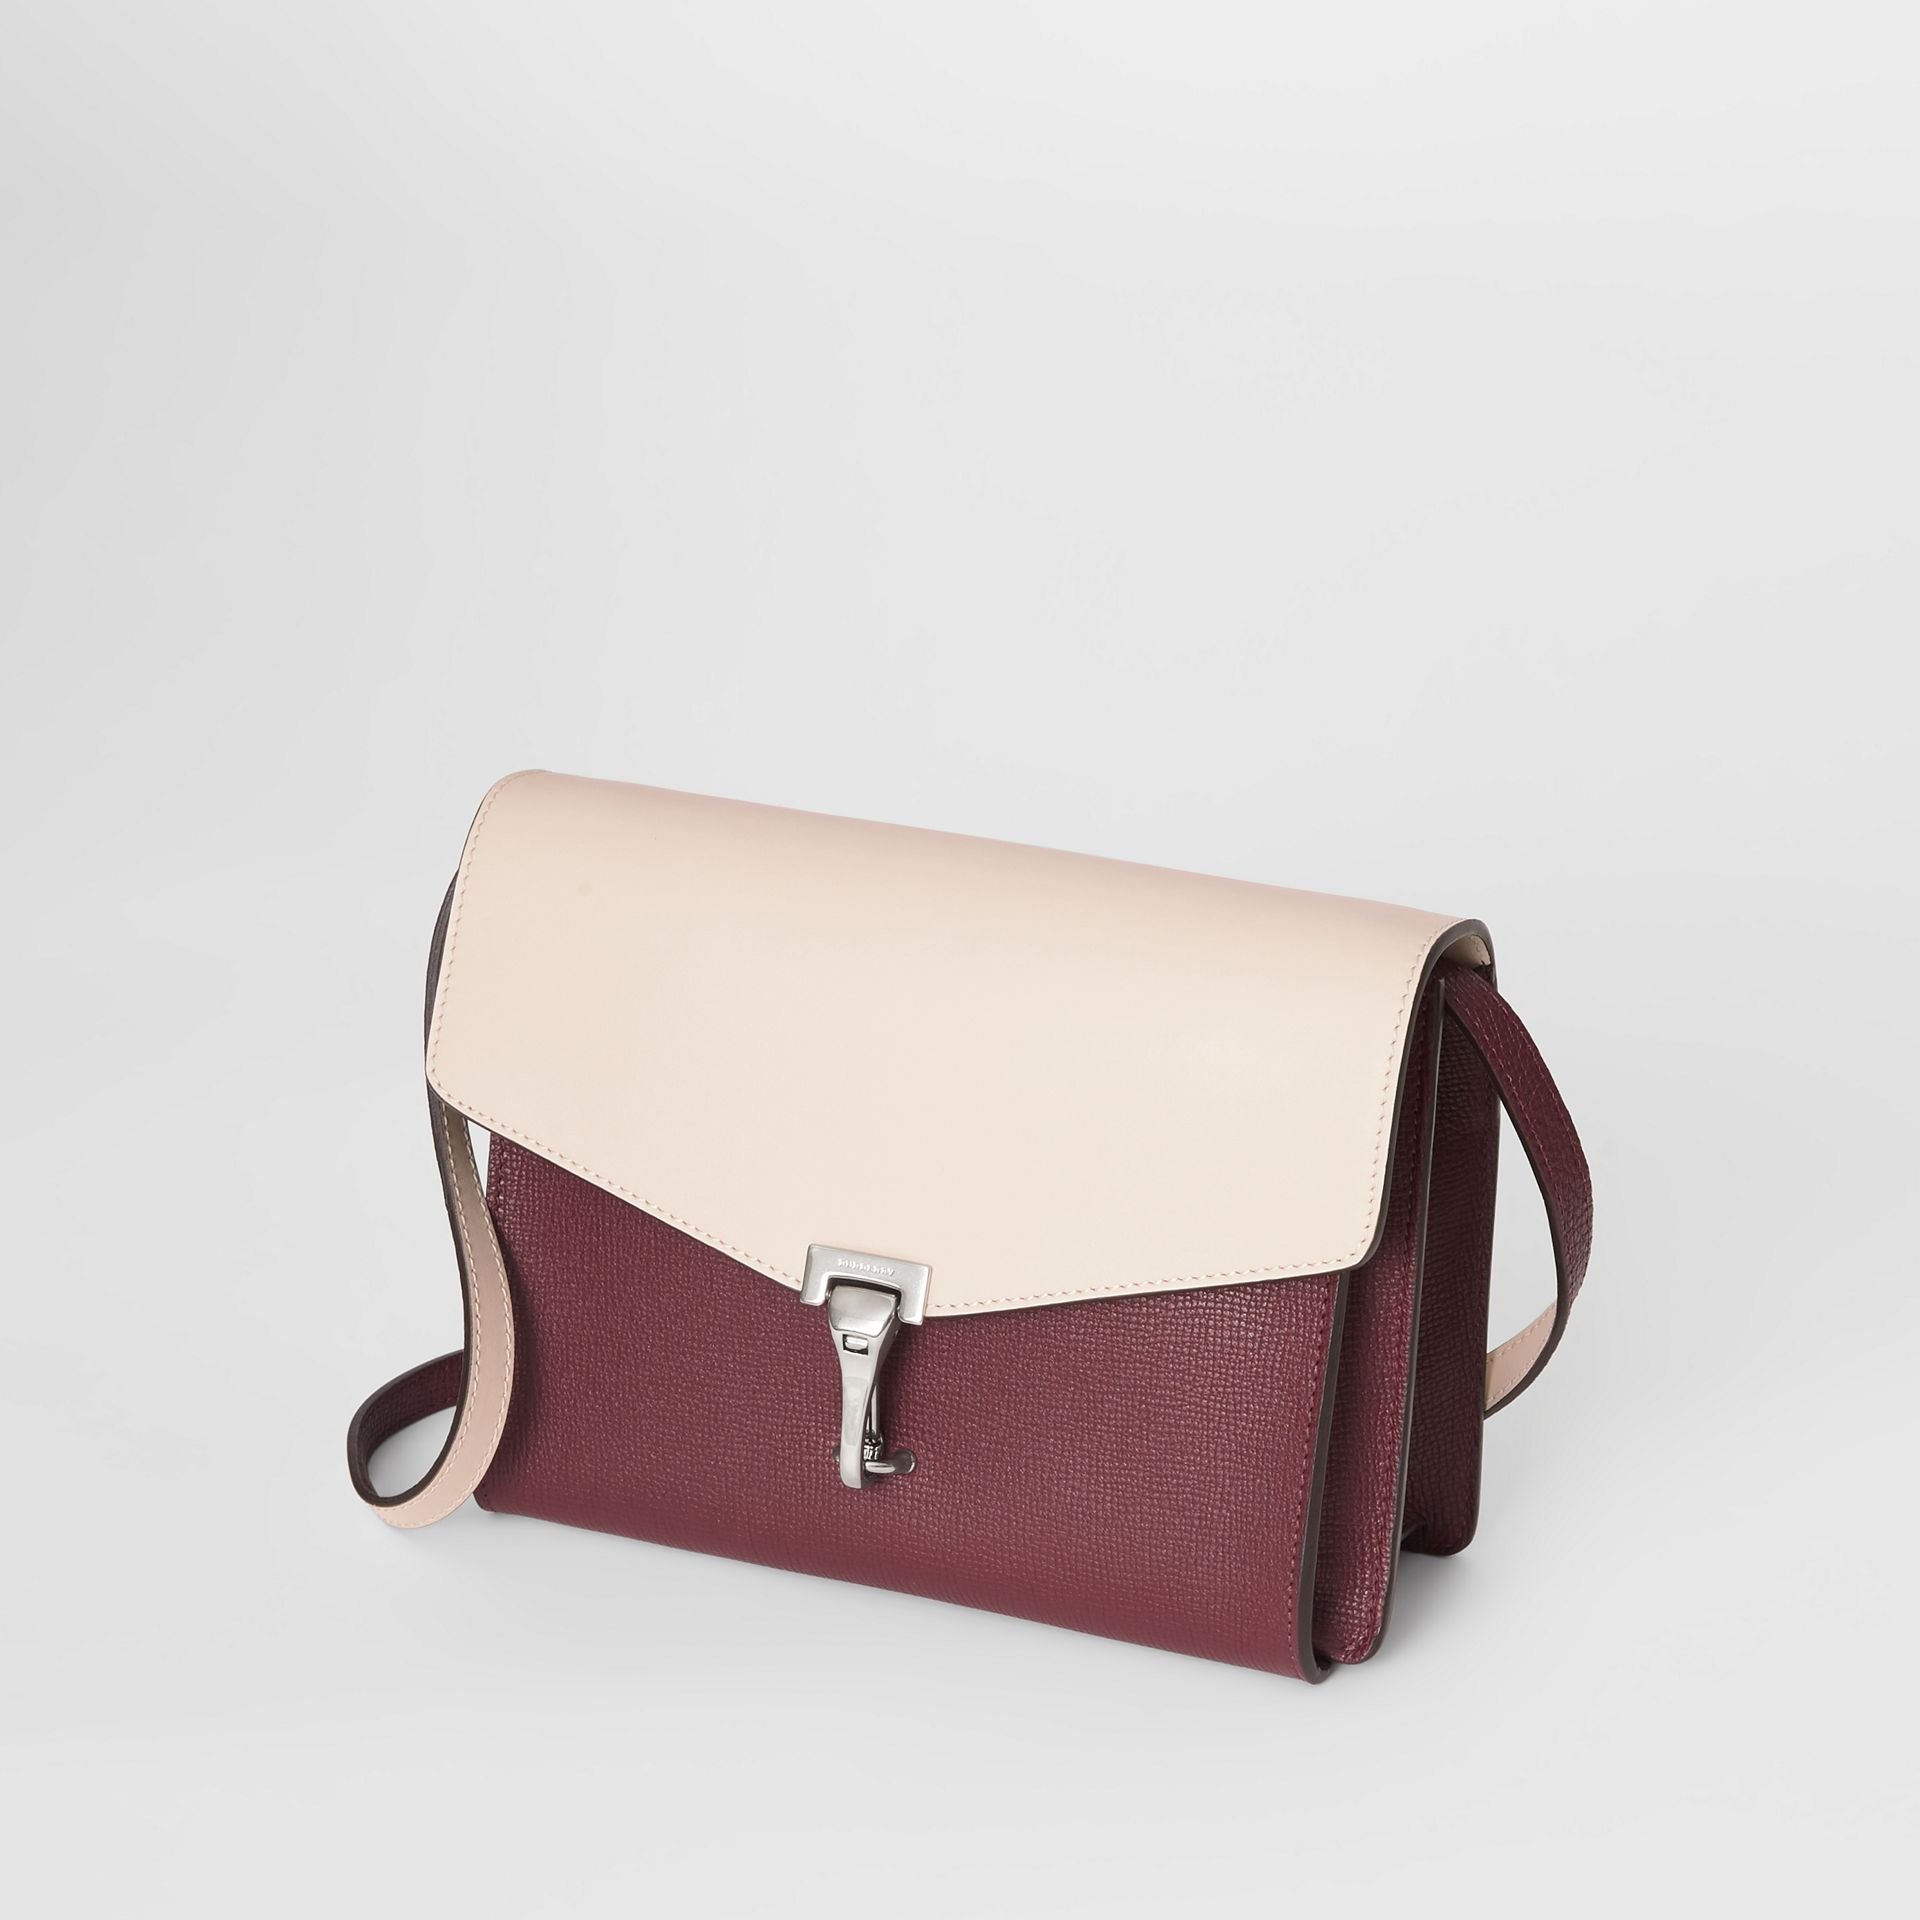 Two-tone Leather Crossbody Bag in Mahogany Red/limestone - Women | Burberry United States - gallery image 4